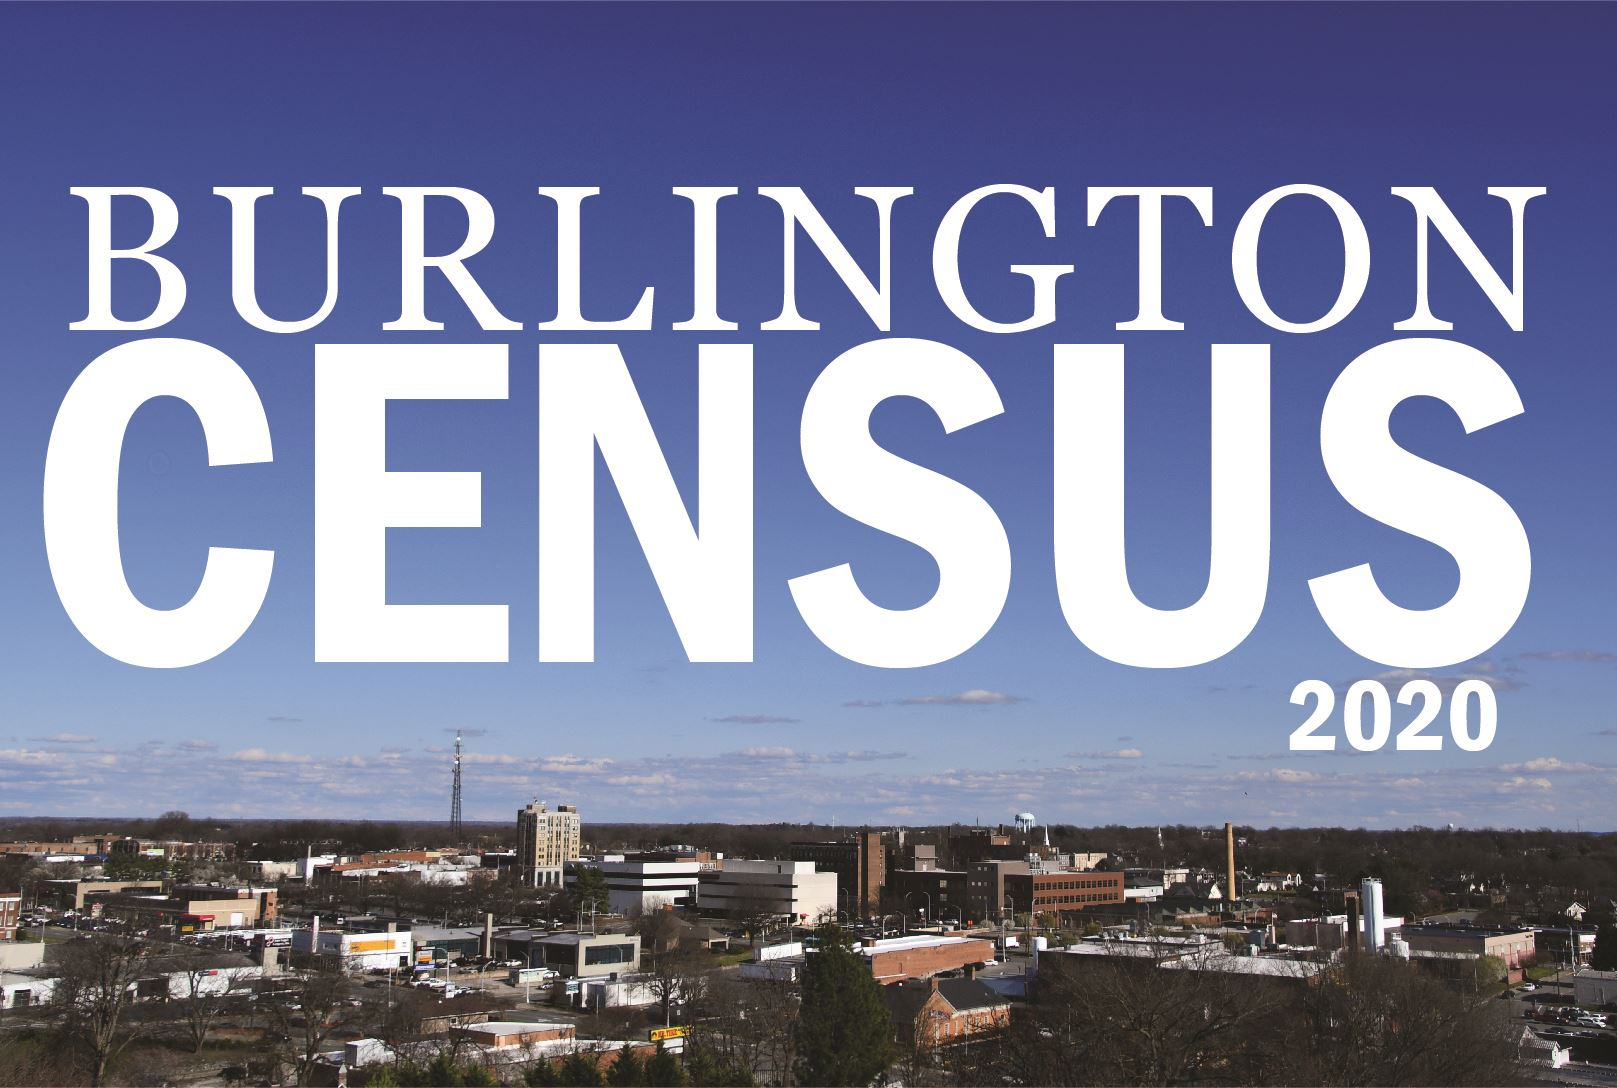 Burlington Census-Skyline